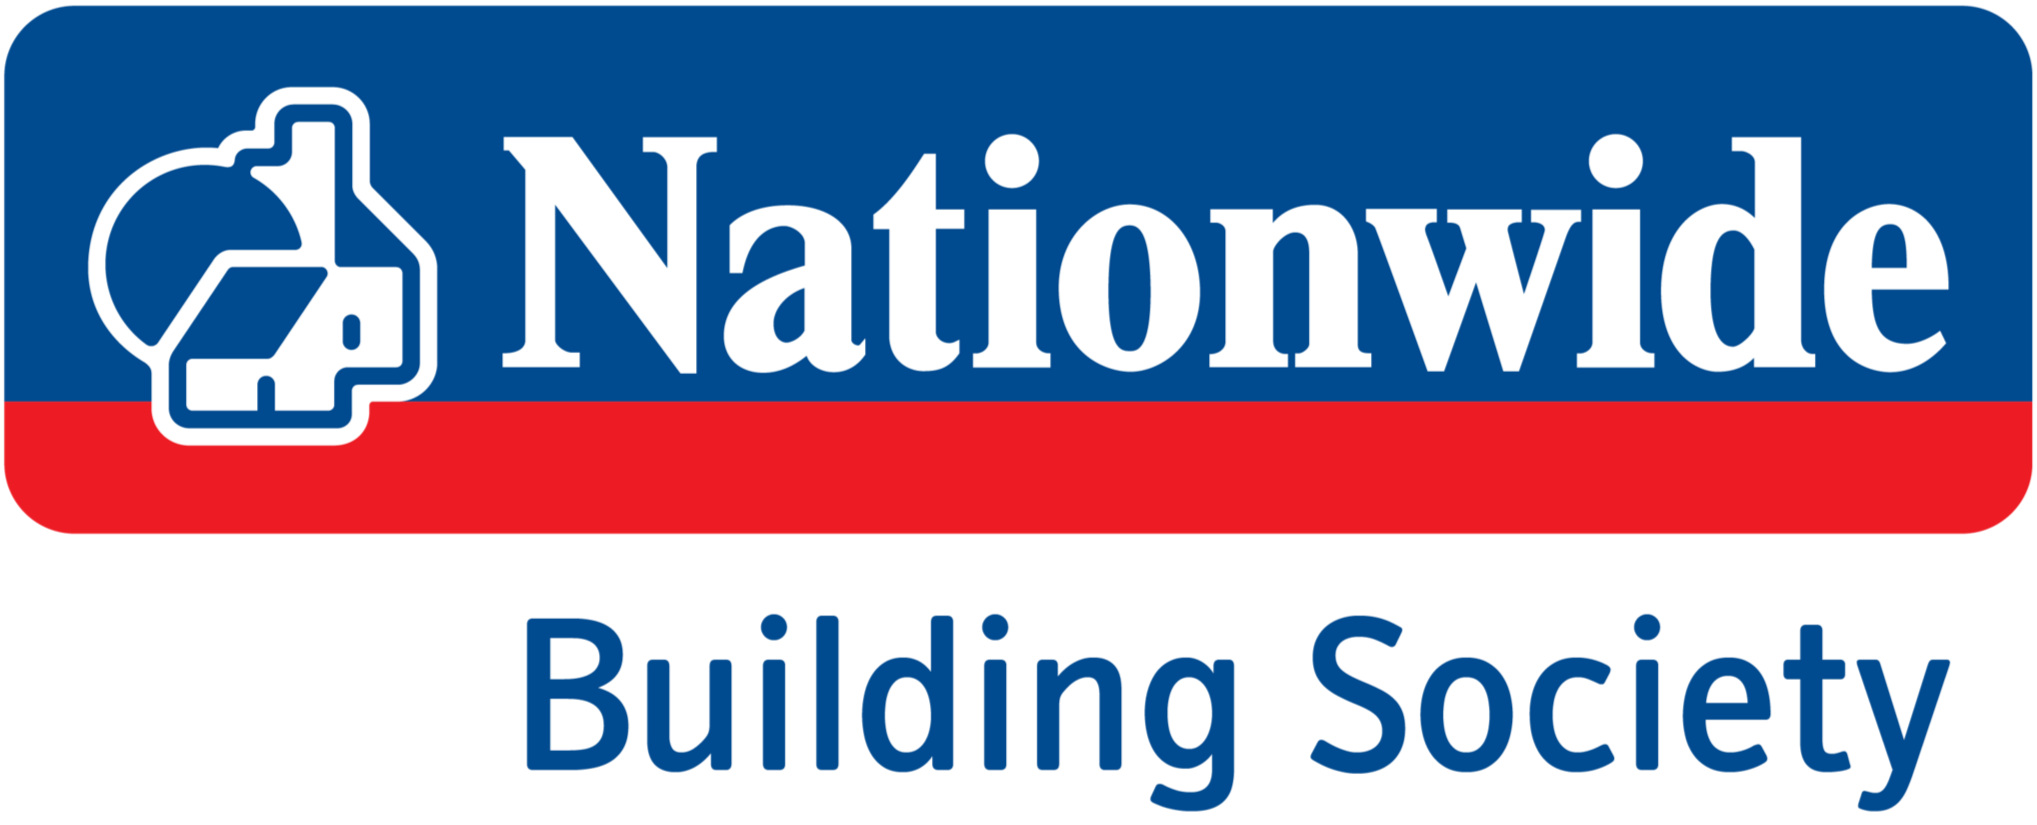 Nationwide-BS-Logo-sRGB.jpg